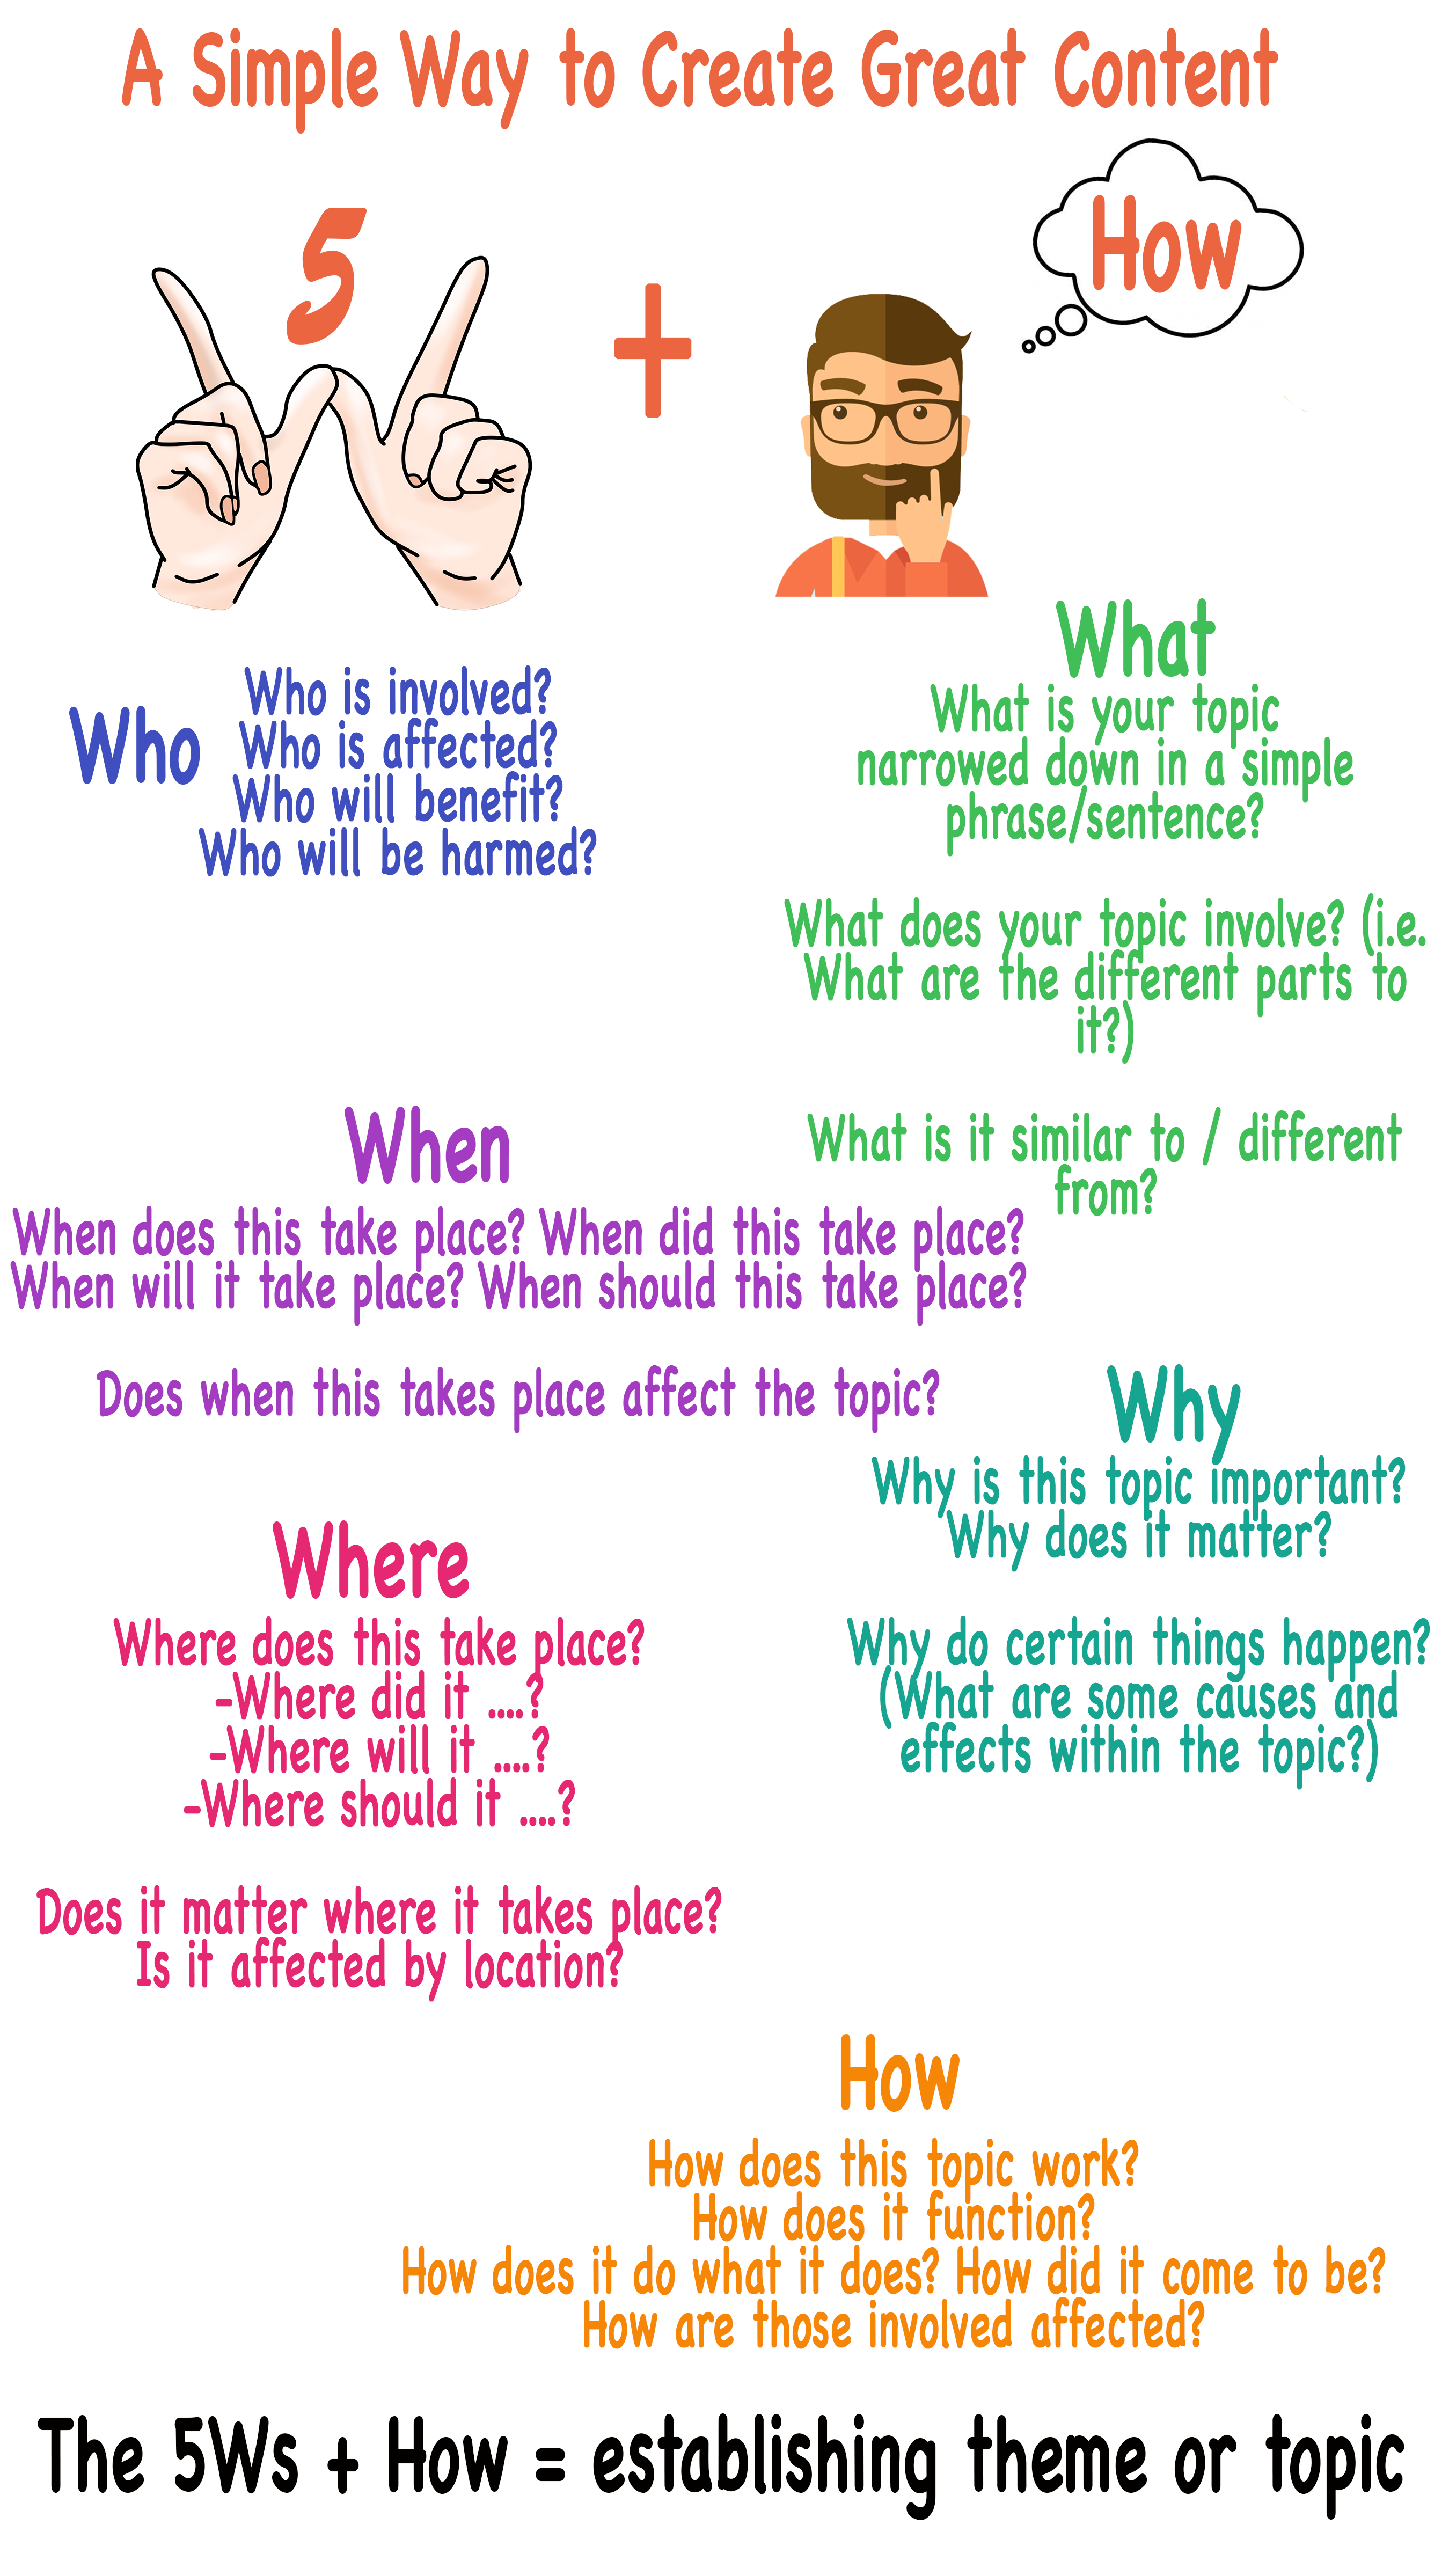 5Ws + How infographic (the transcript of the infographic is provided underneath as a Word document file)